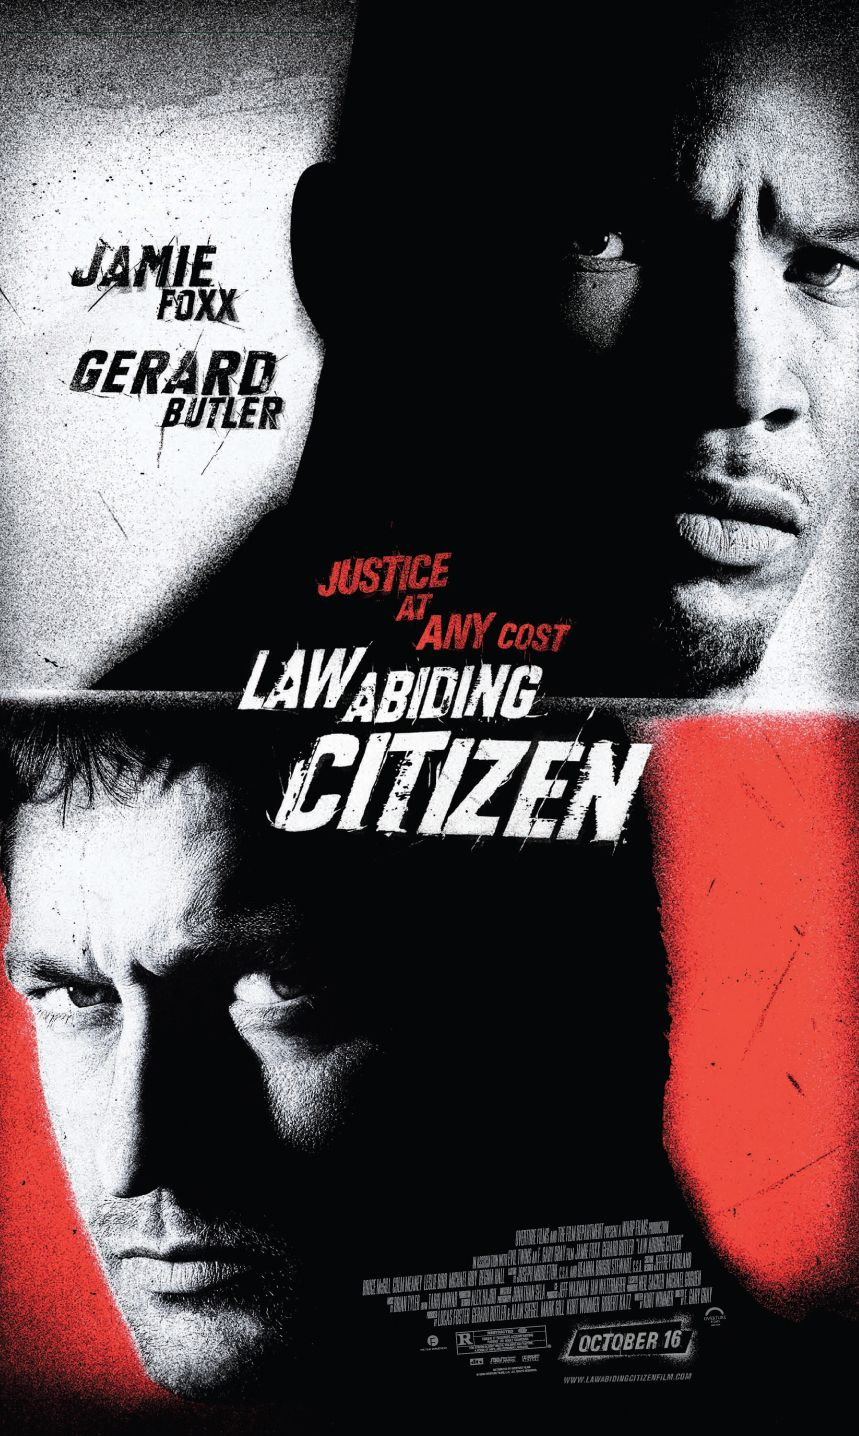 Law Abiding Citizen , starring Gerard Butler, Jamie Foxx, Leslie Bibb, Colm Meaney. A frustrated man decides to take justice into his own hands after a plea bargain sets one of his family's killers free. He targets not only the killer but also the district attorney and others involved in the deal. #Crime #Drama #Thriller